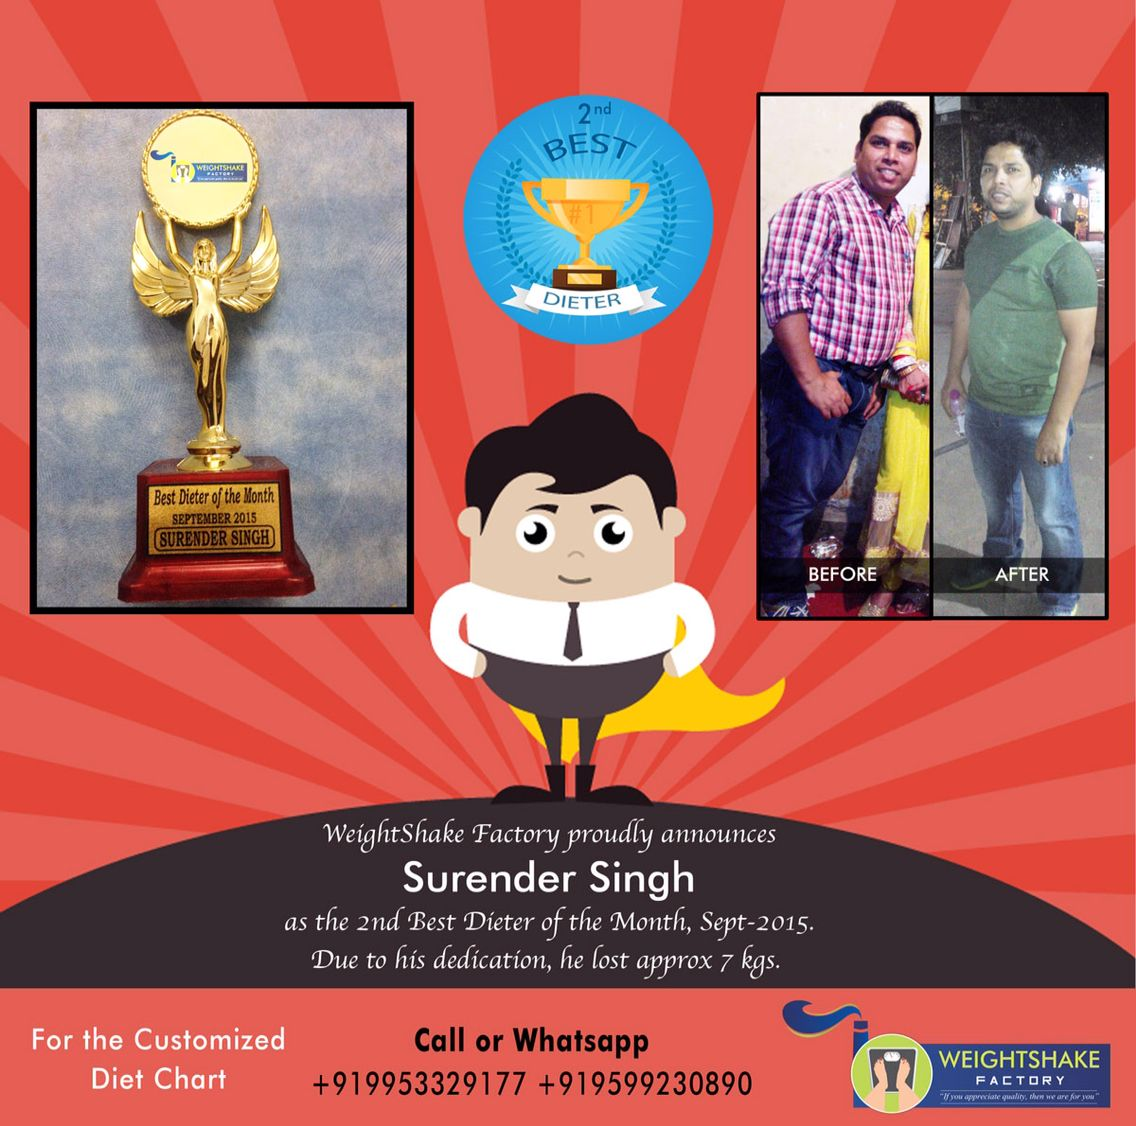 Weightshake Factory proudly announces Surinder Singh as the 2nd Best Dieter of the Month Sept. 2015  We have hardly seen a man dedicated like him. He lost 7 kgs in a month due to his Hard Work & full dedication. Hats off for these awesome people  To Join our Different Diet Chart Packages: Call or Whatsapp us @ +919953329177.